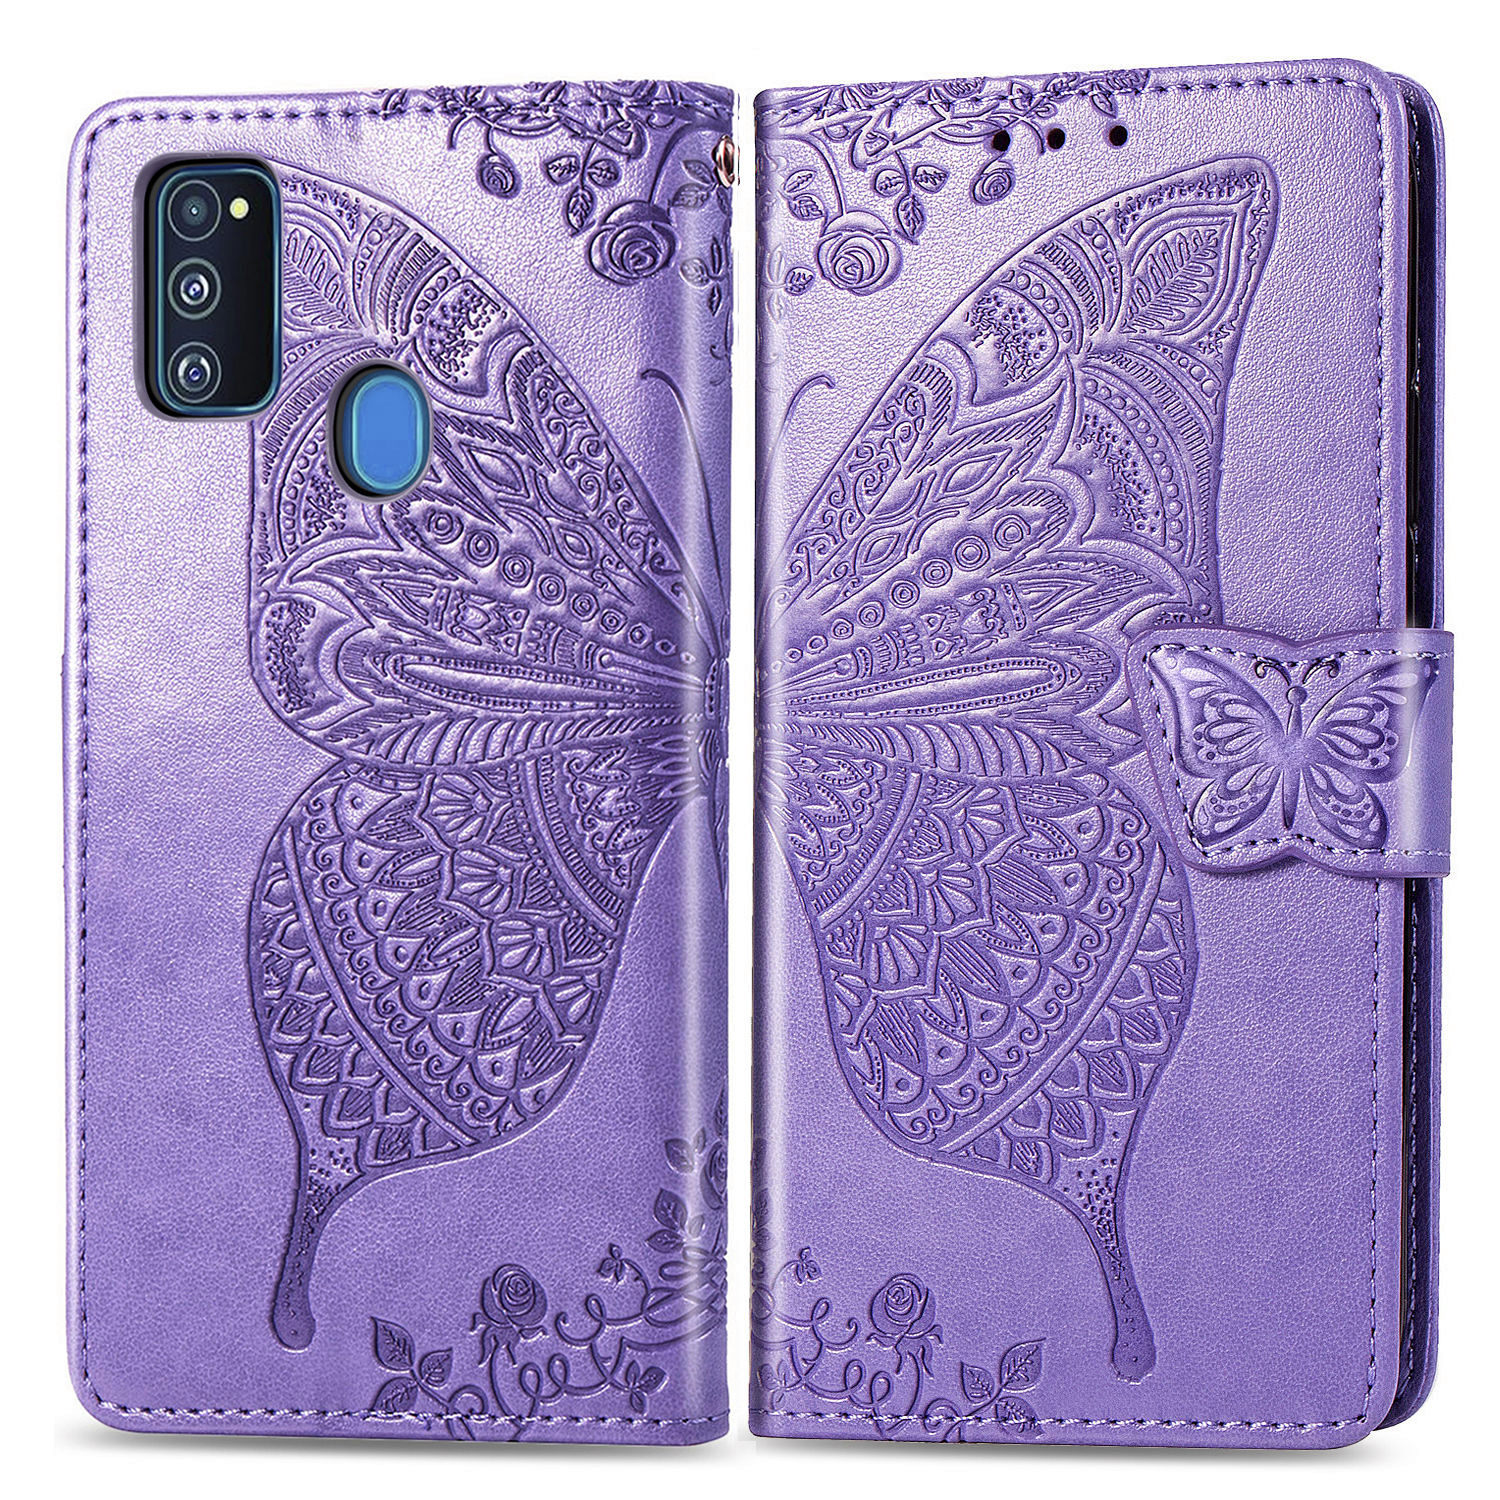 Butterfly <font><b>Case</b></font> For <font><b>Samsung</b></font> Galaxy M31 M21 M30s <font><b>Flip</b></font> Cover Leather Phone <font><b>Case</b></font> for <font><b>Samsung</b></font> Galaxy <font><b>M20</b></font> M30 M10 Funda image